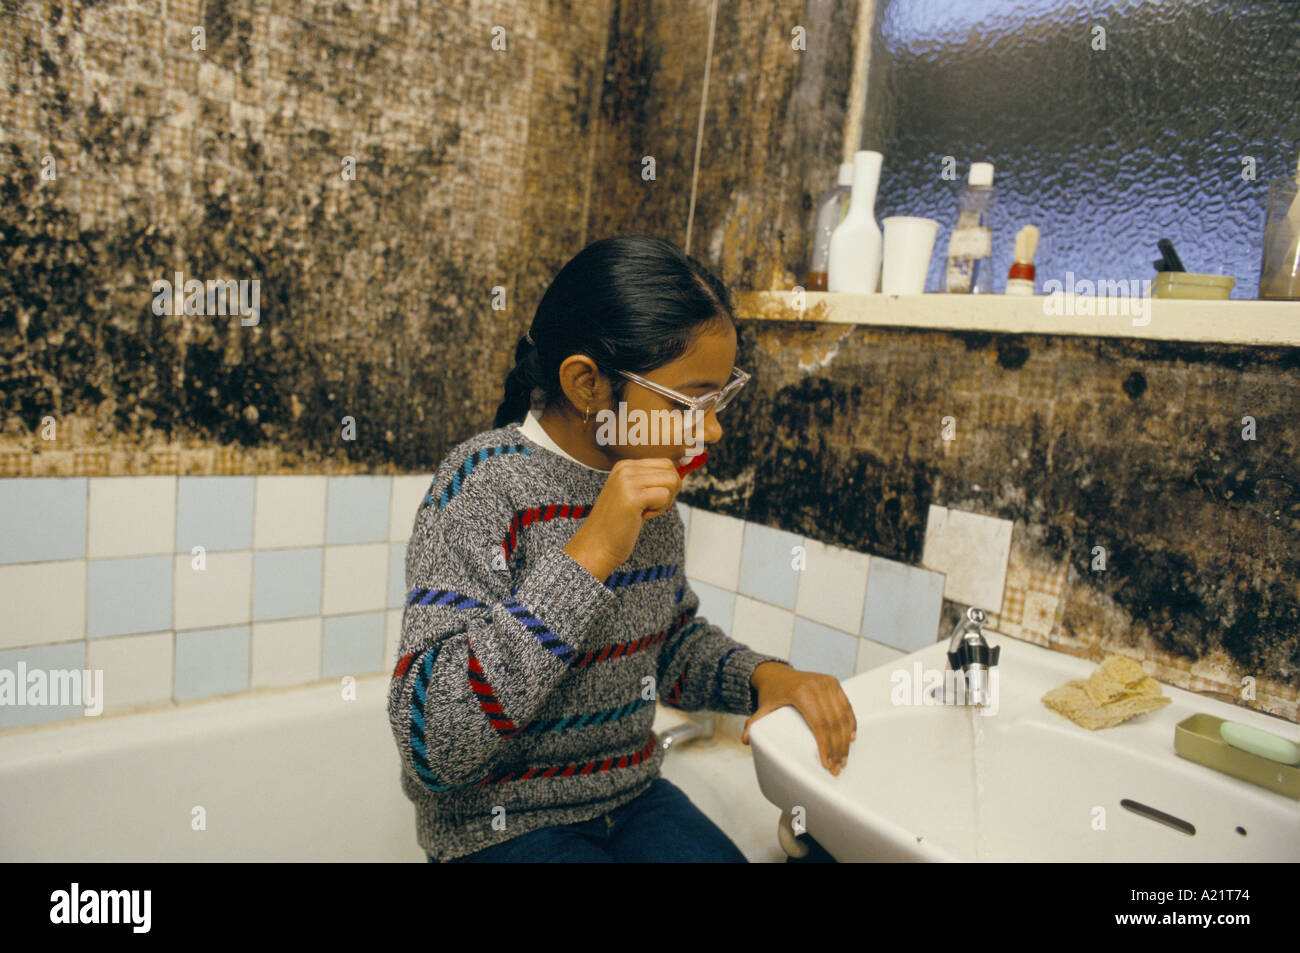 An Asian girl brushing her teeth in a bathroom  with  mouldy walls, Tower Hamlets, London, UK - Stock Image